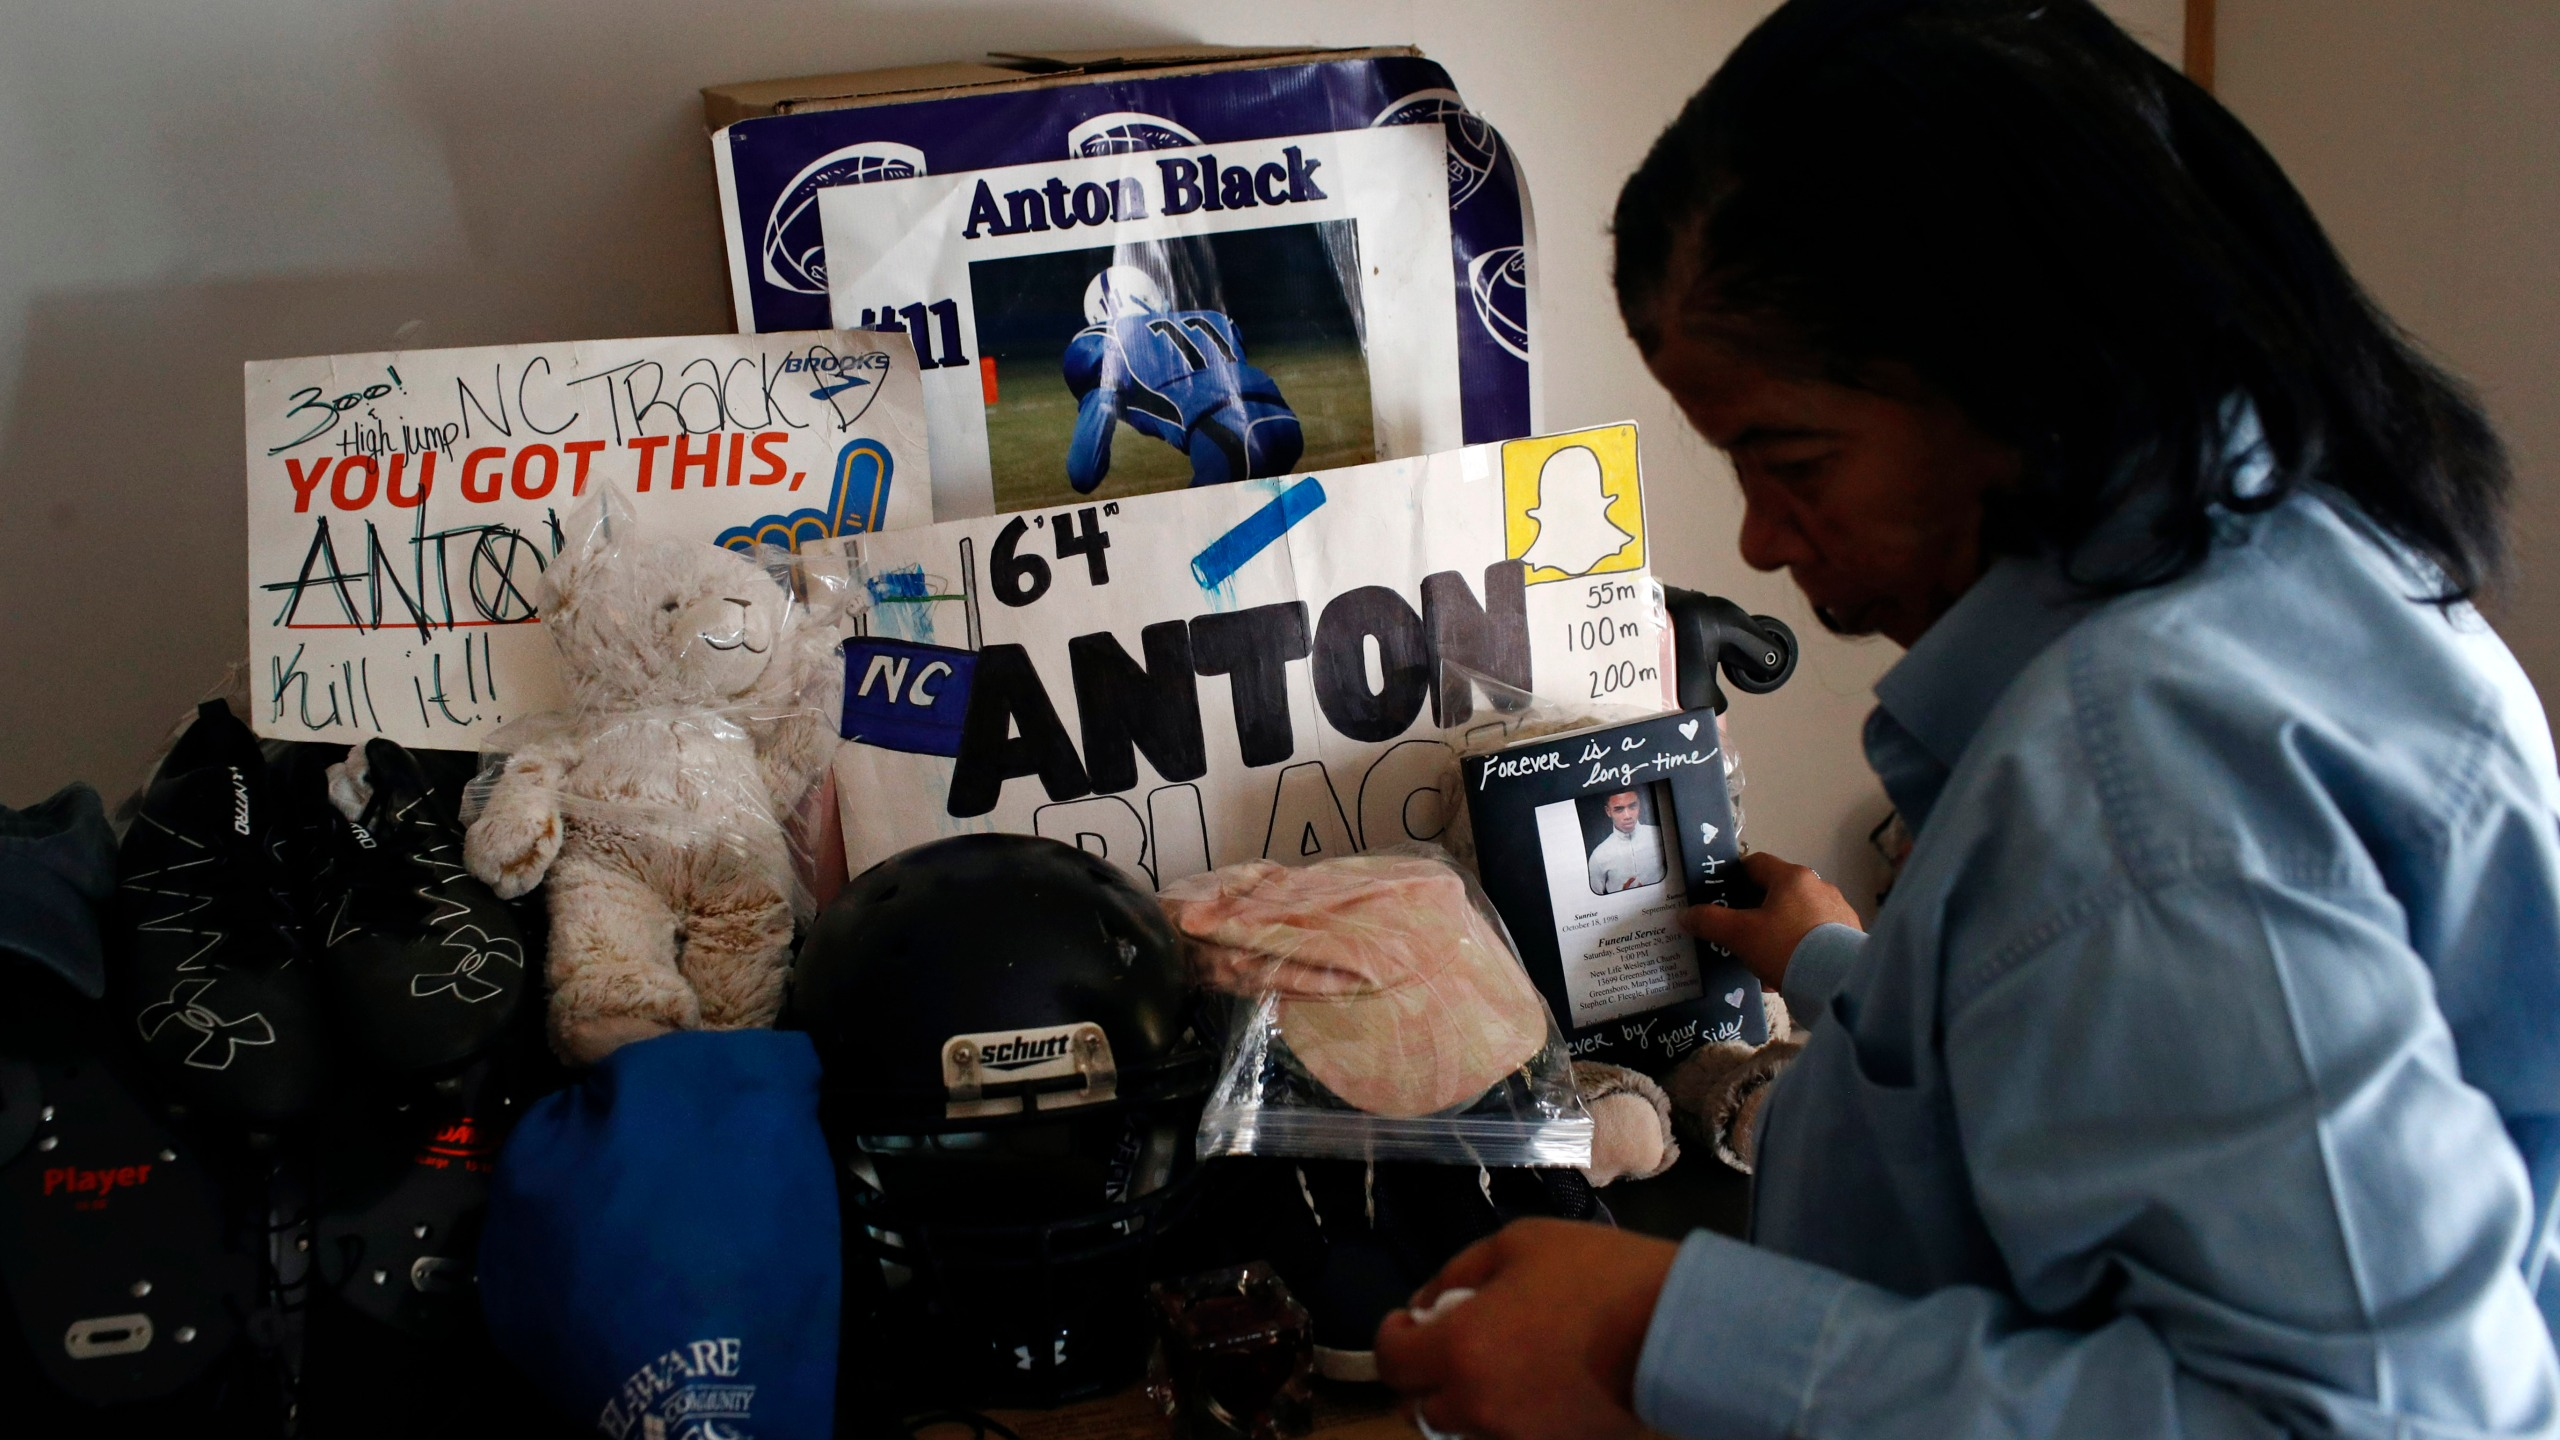 In this Jan. 28, 2019 file photo, Jennell Black, mother of Anton Black, looks at a collection of her son's belongings at her home in Greensboro, Md. Anton Black, 19, died after a struggle with three officers and a civilian outside the home in September 2018. Cases involving police use of force often include questions about the internal records of the officers involved, records that in most cases are off-limits to the press and public. Lawmakers in at least 13 states have considered bills this year to make those records more publicly available. (AP Photo/Patrick Semansky, File)